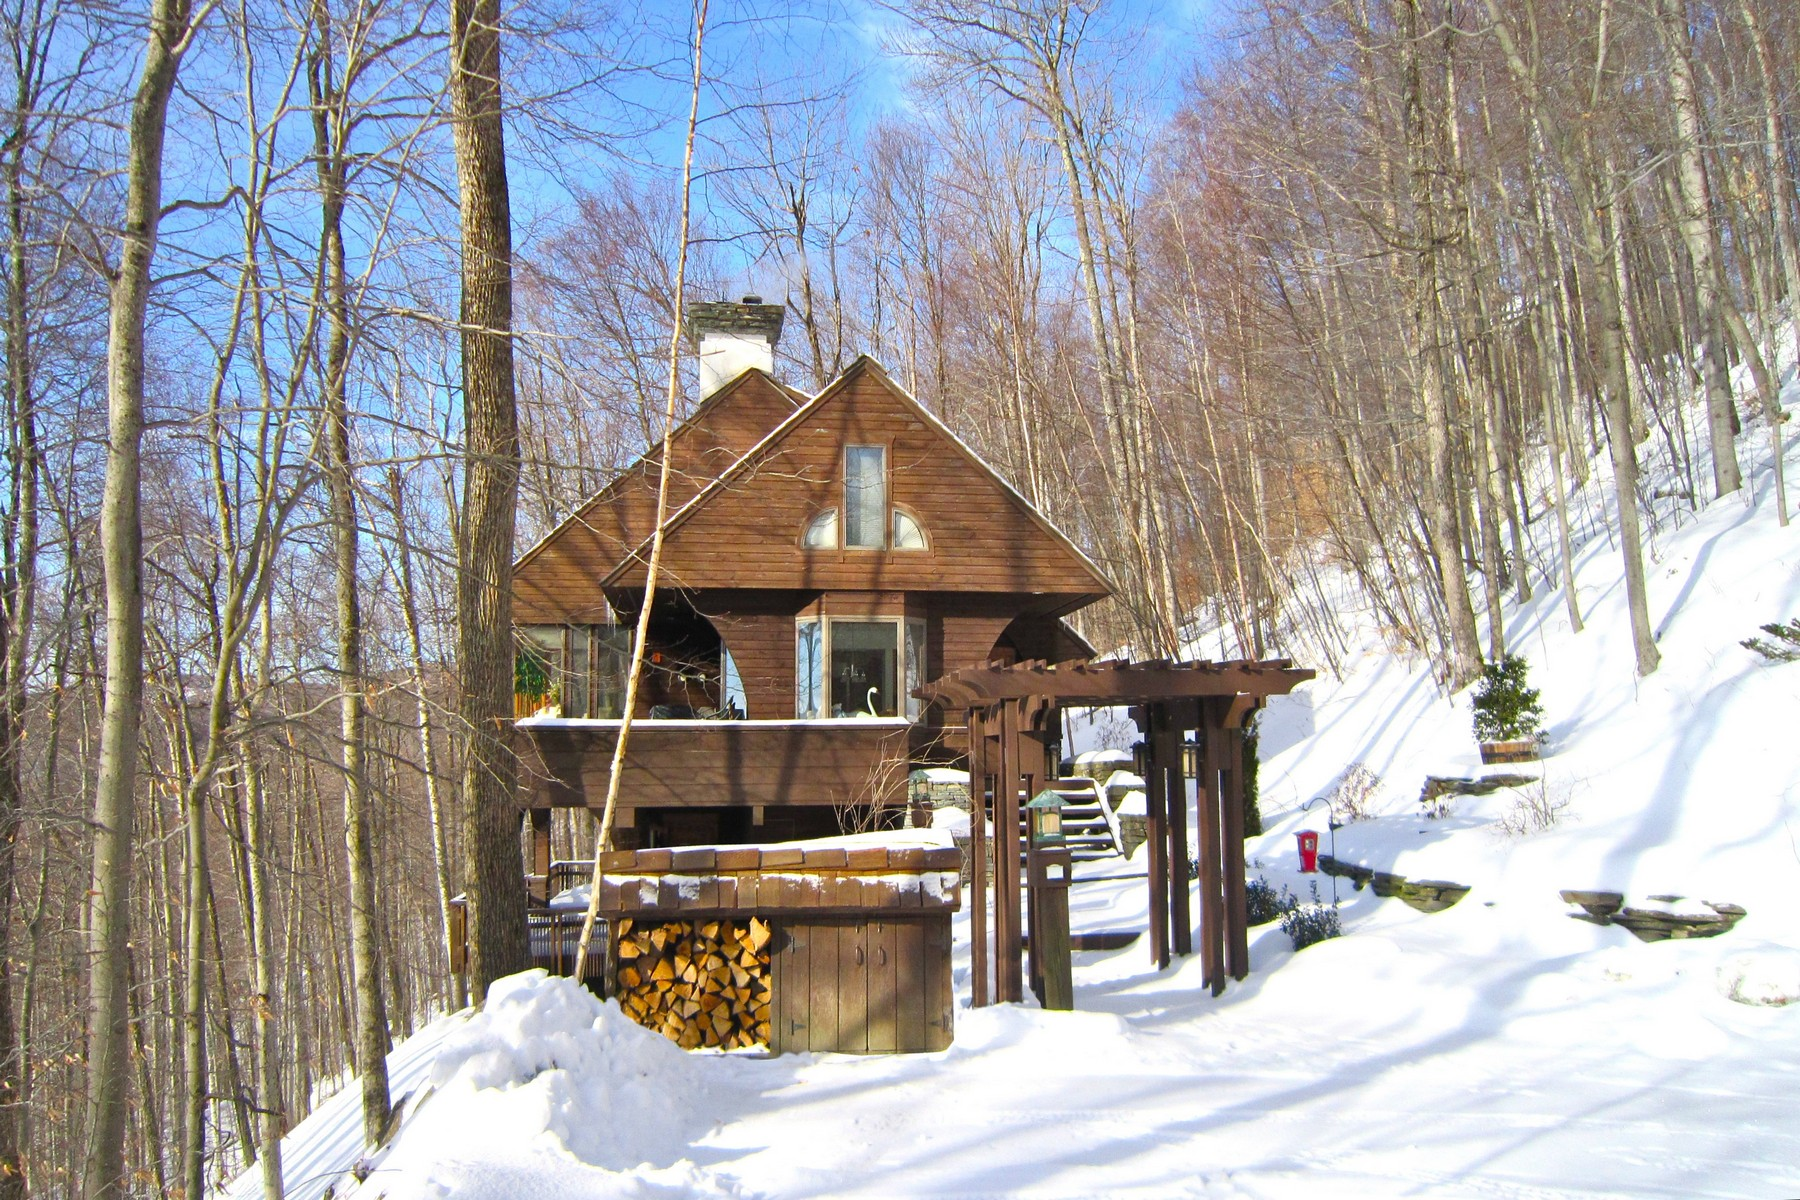 Single Family Home for Sale at Inspiring Views 151 Osprey Pl Plymouth, Vermont 05056 United States